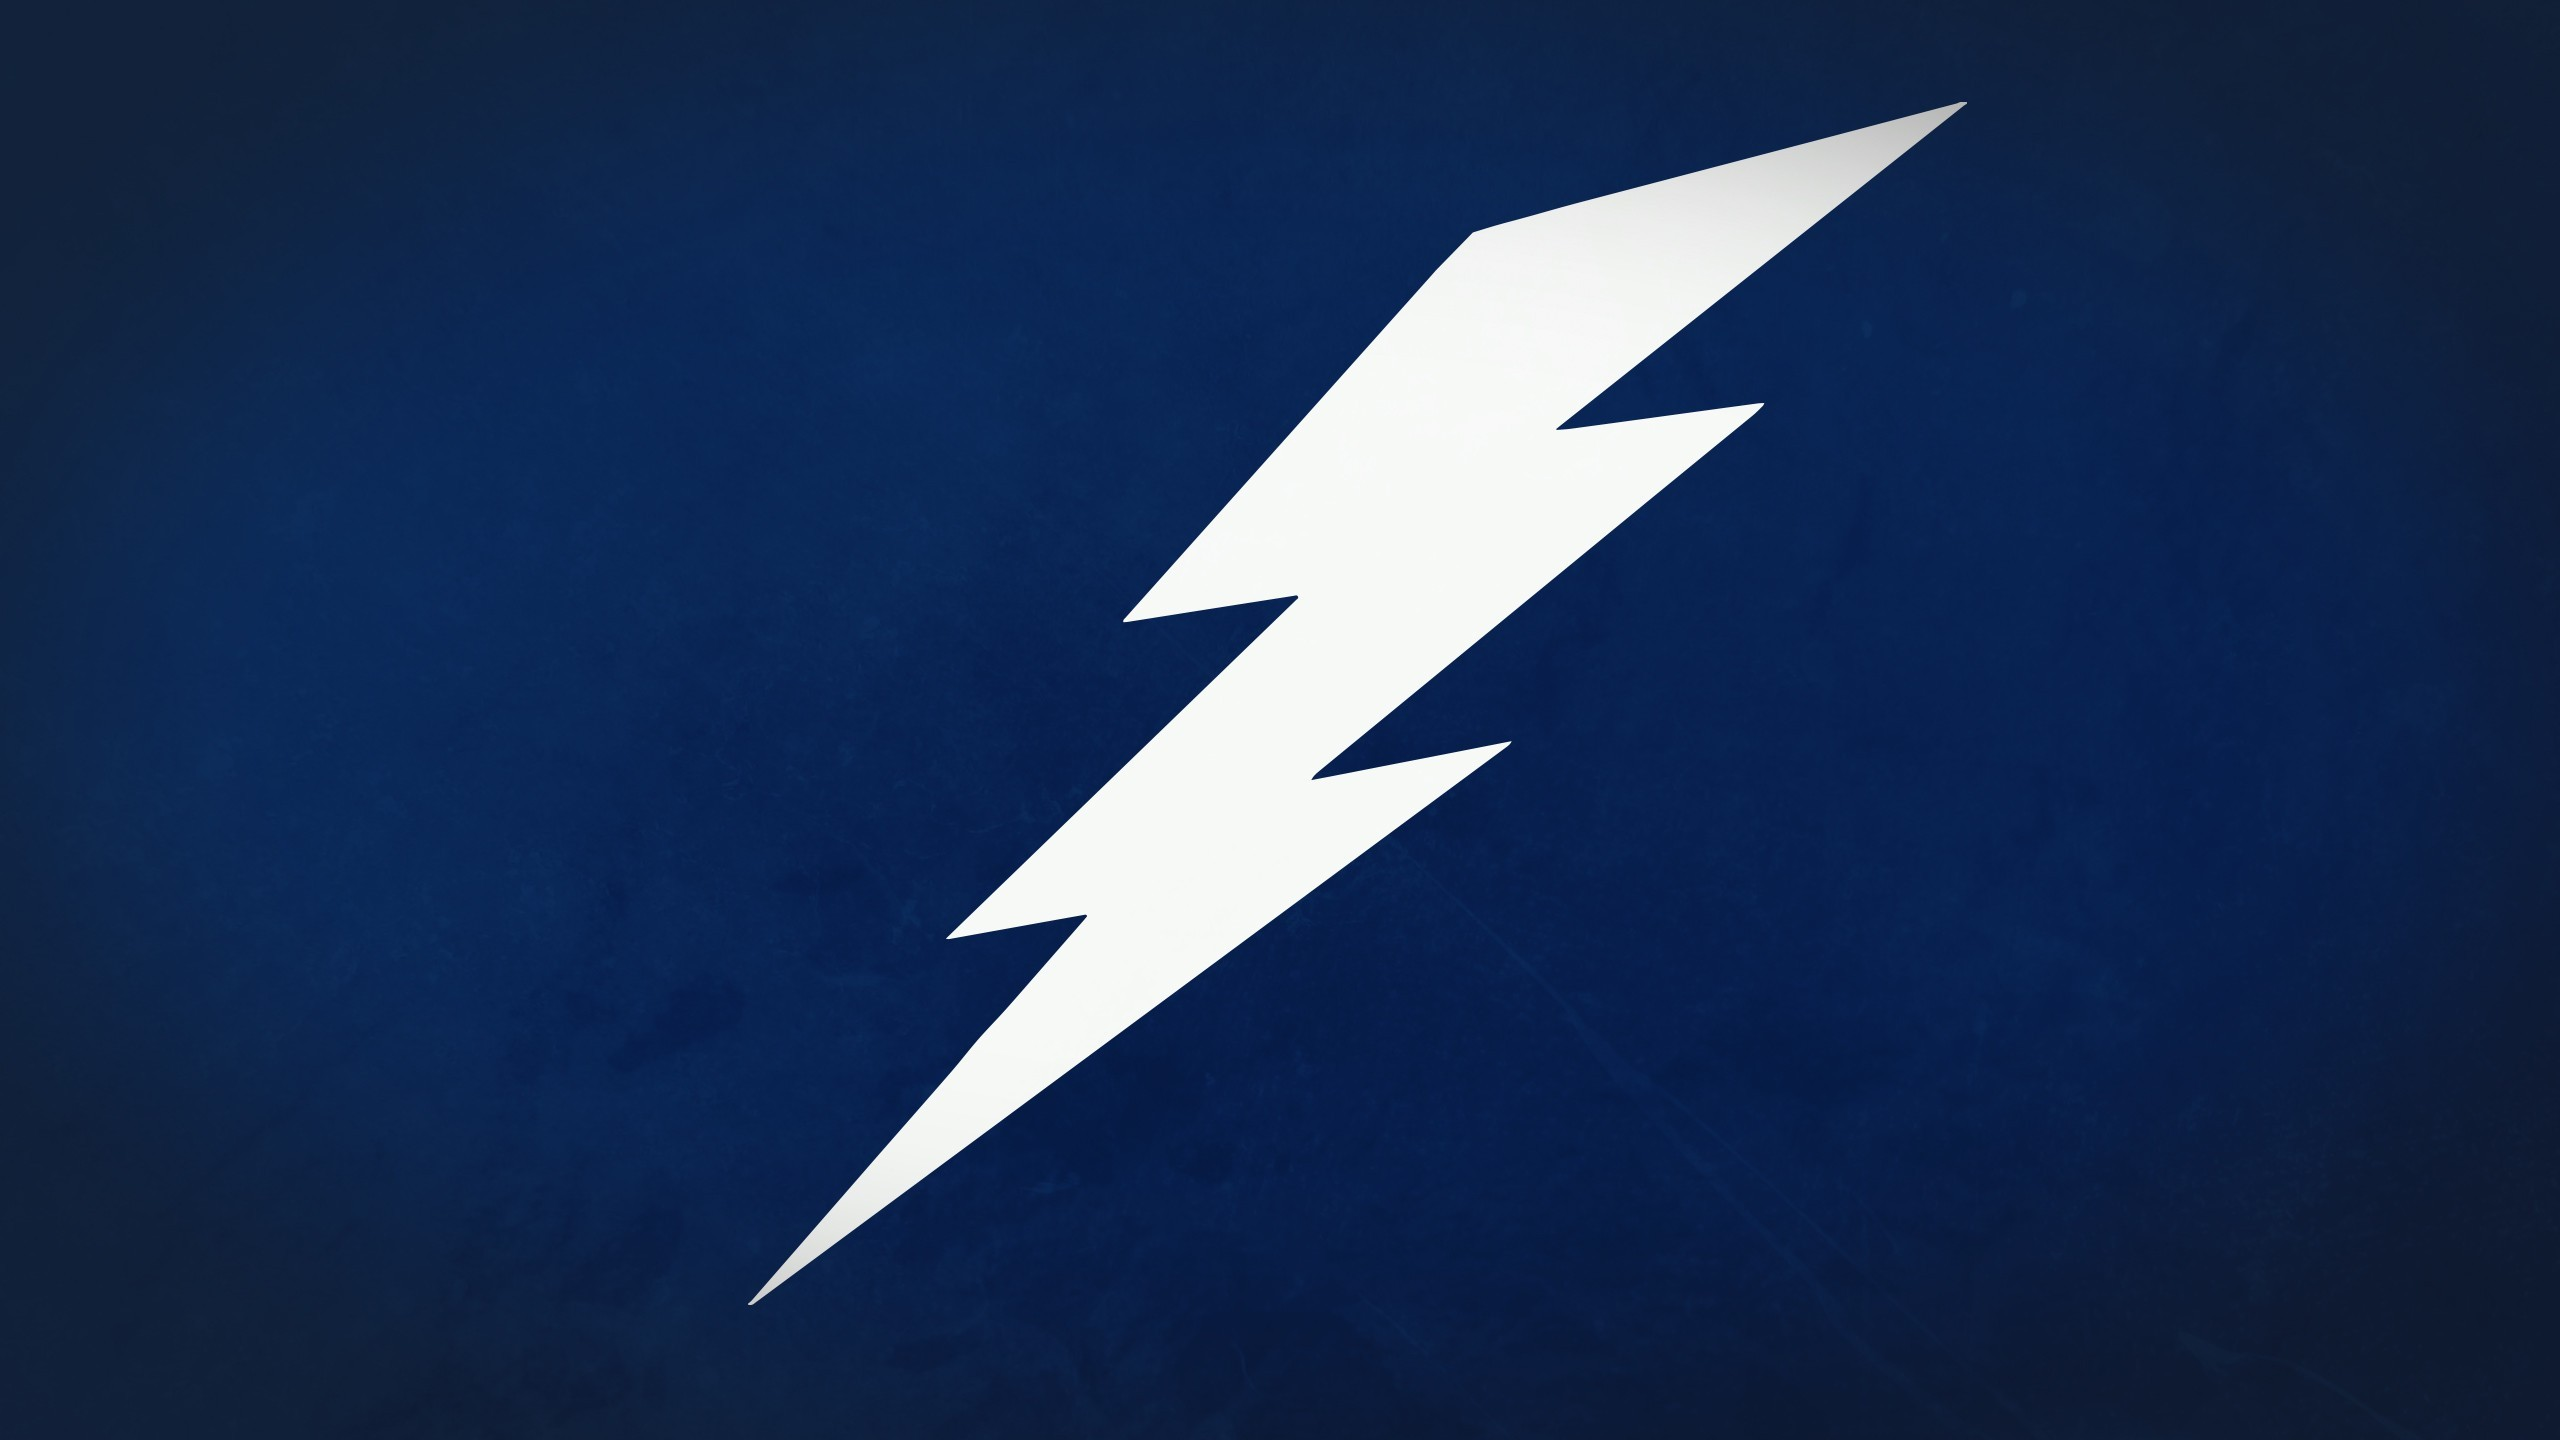 2560x1440 Tampa Bay Lightning HD Wallpaper | Background Image |  | ID:415117  - Wallpaper Abyss